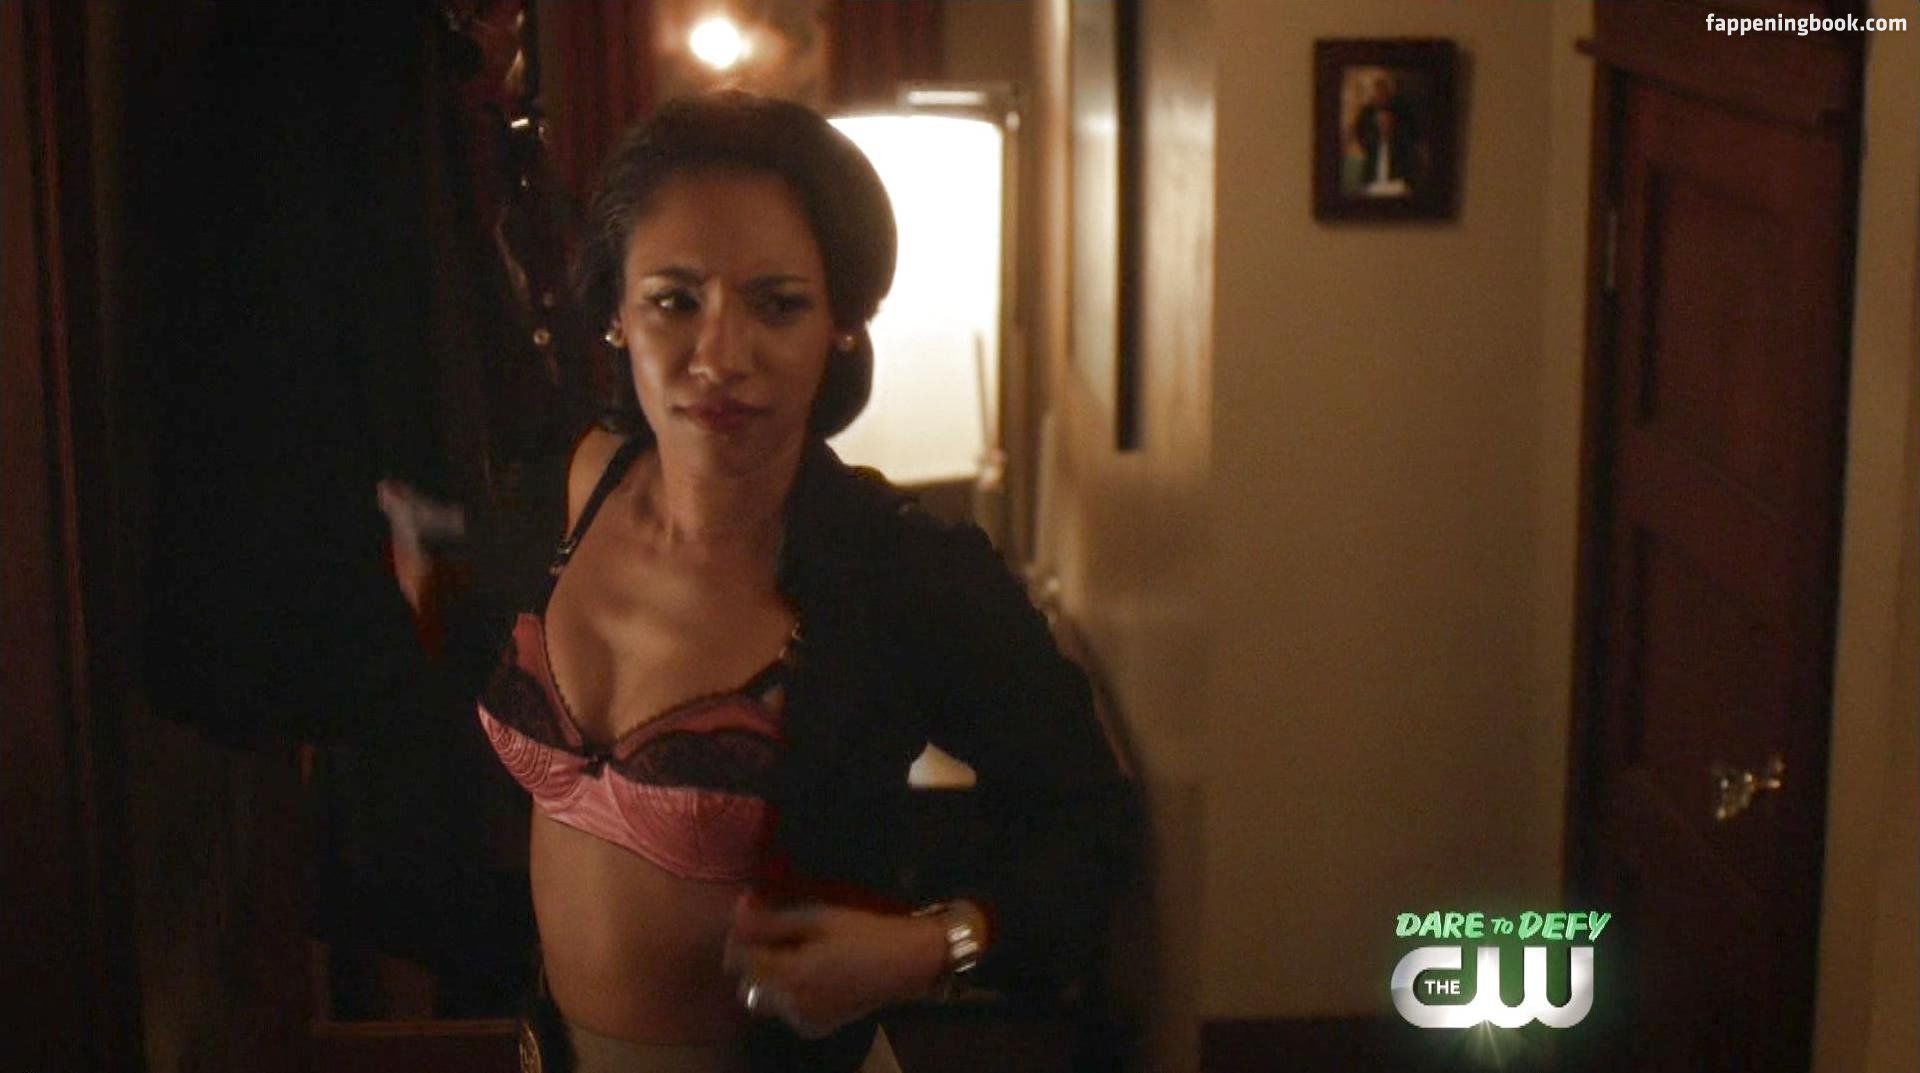 Nude leaked candice patton quite good variant